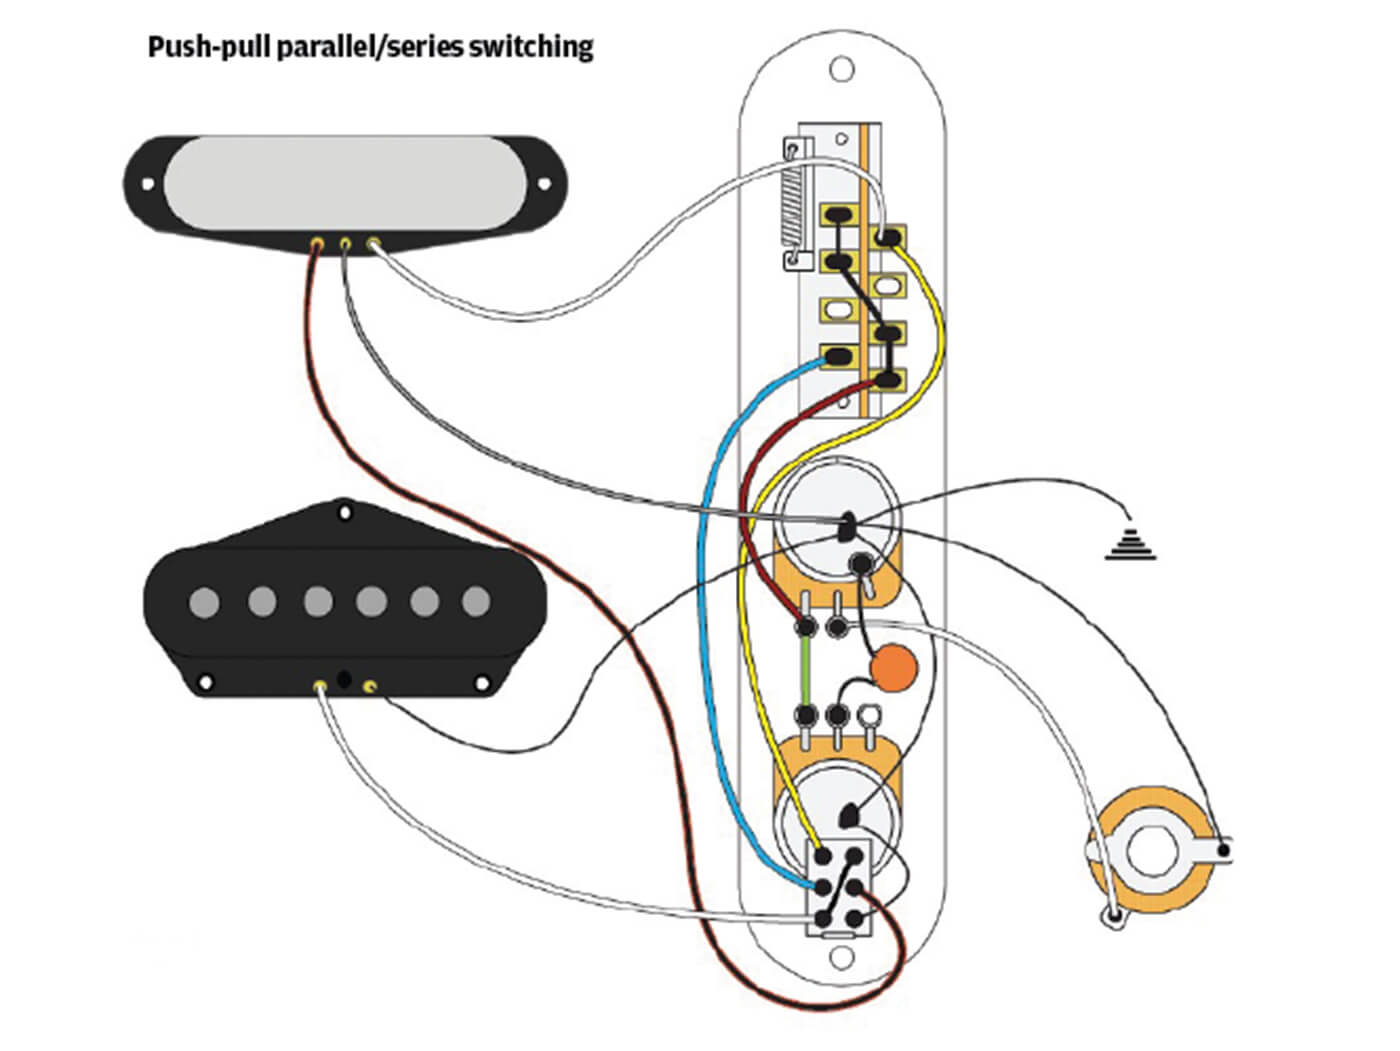 hight resolution of  tele without swapping the three way switch or changing the outward appearance putting hum cancelling properties aside for a moment humbucking pickups